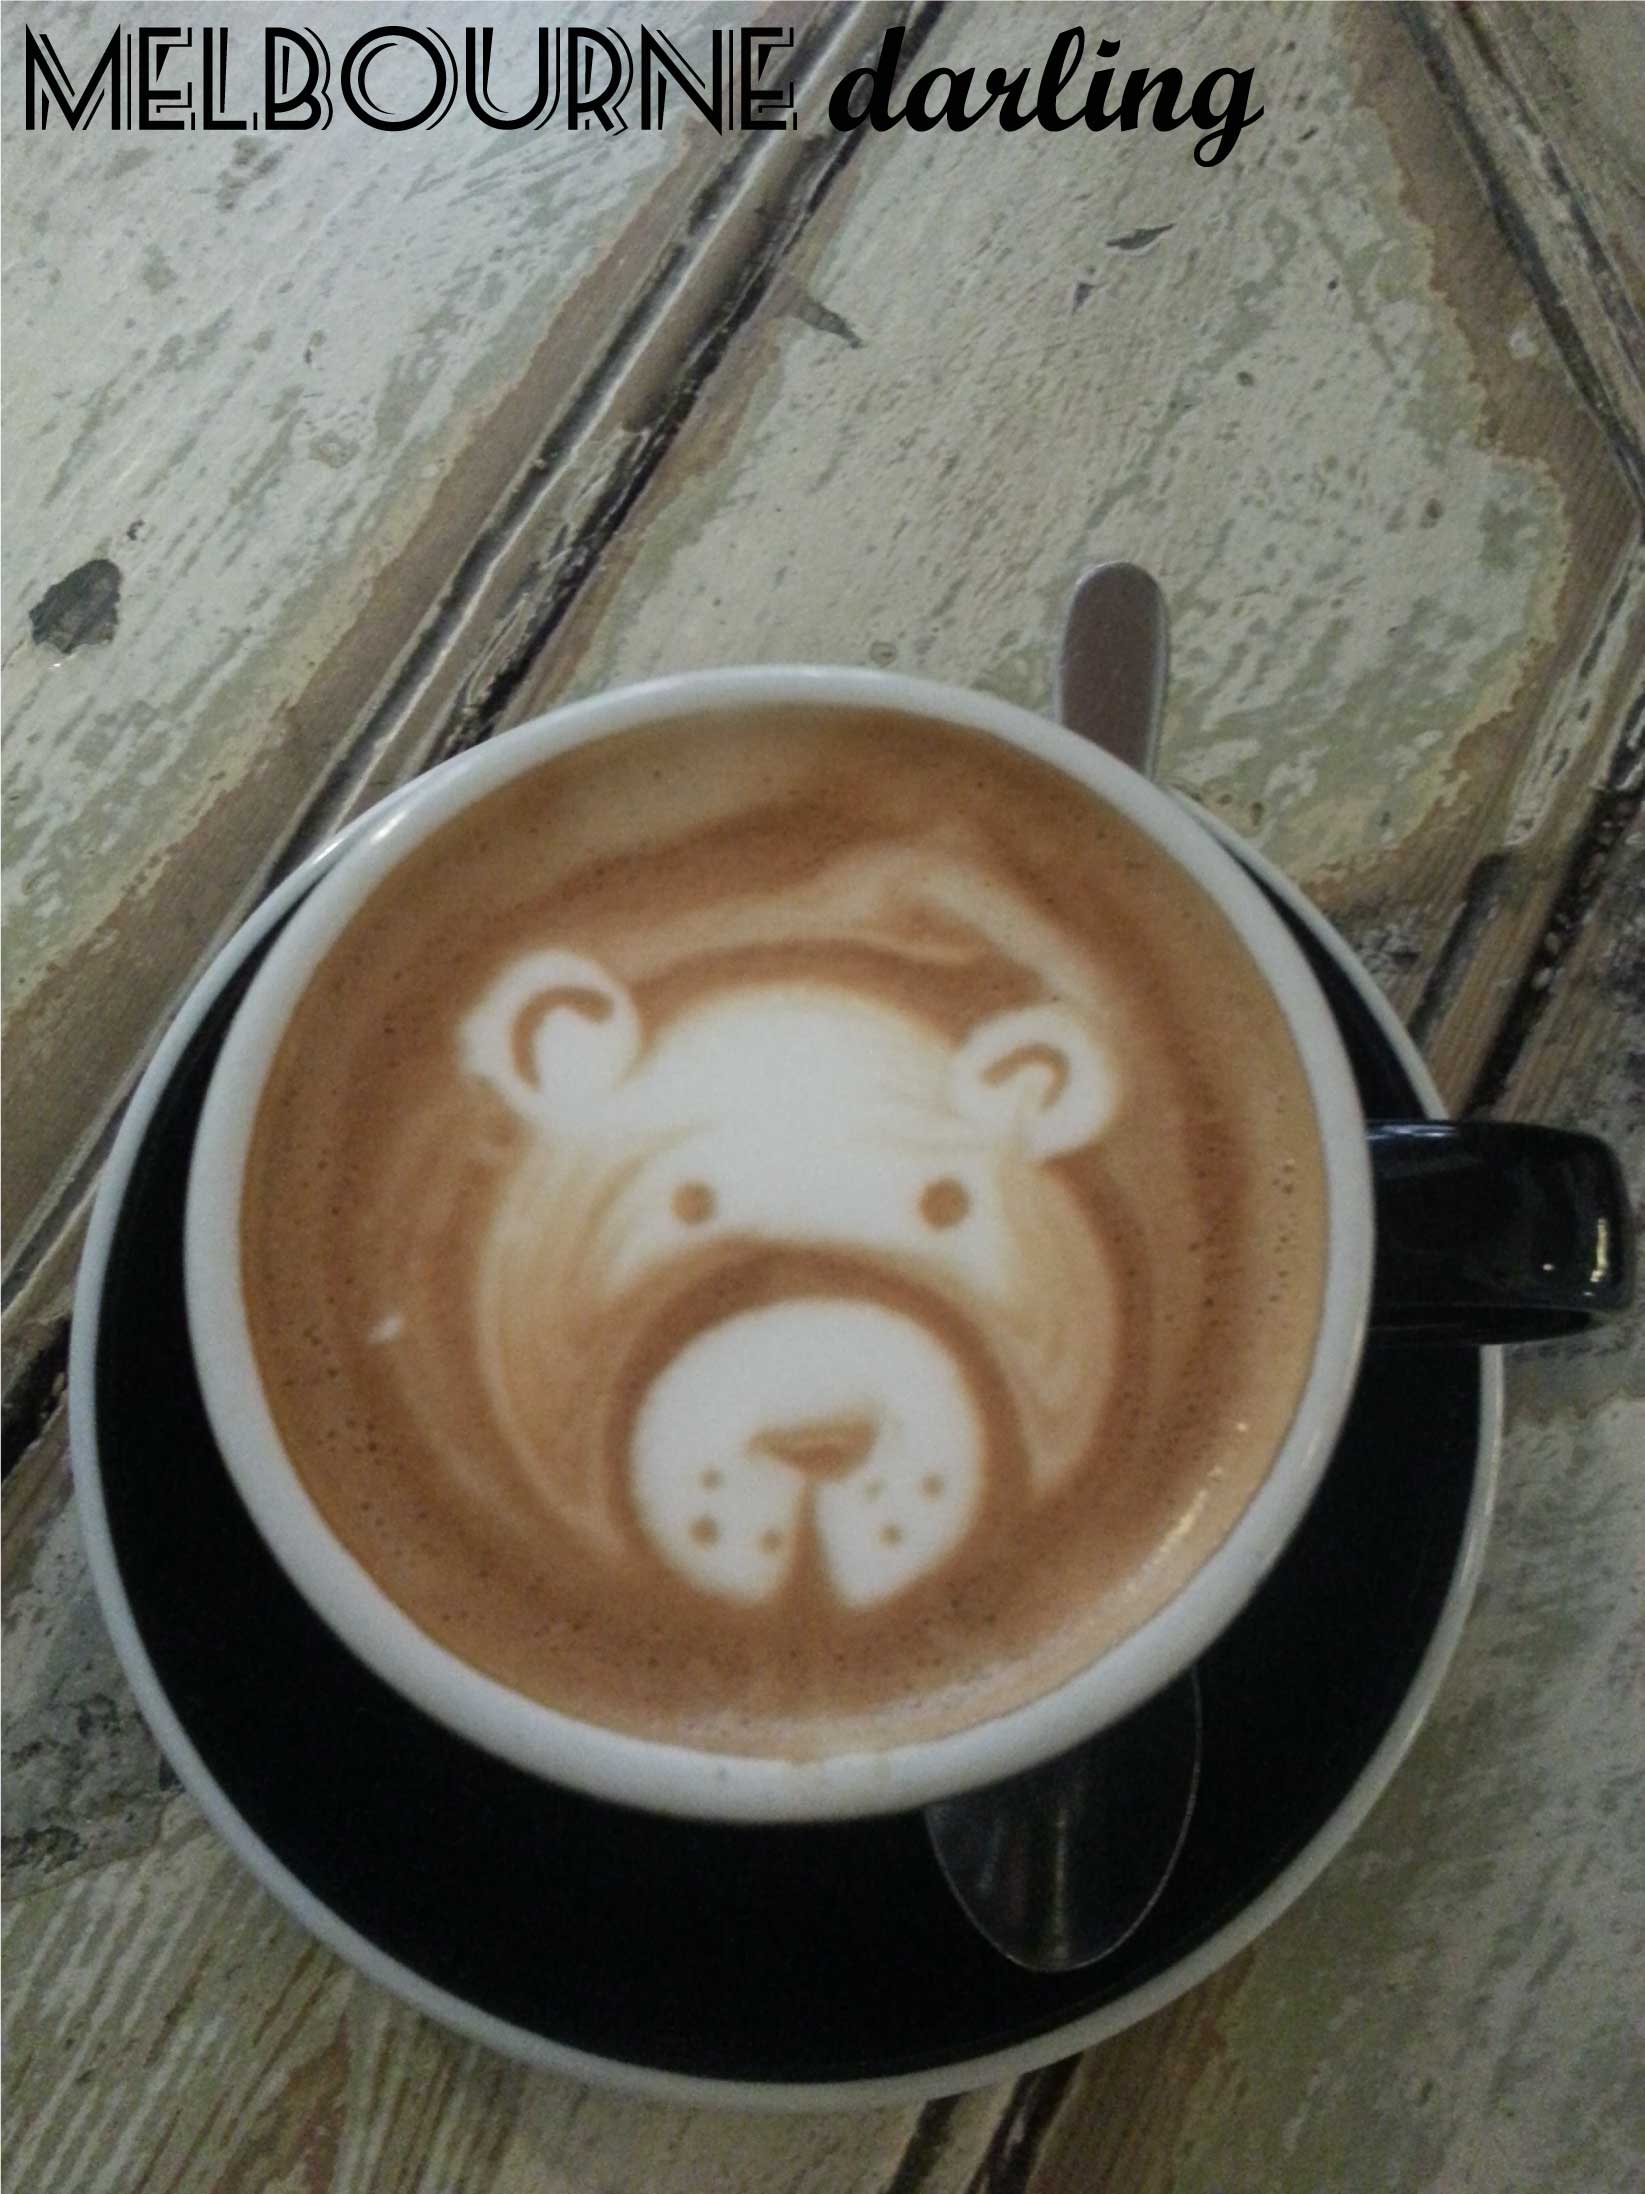 Coffee Art Bear Manchester Press Dining Review Melbourne Darling